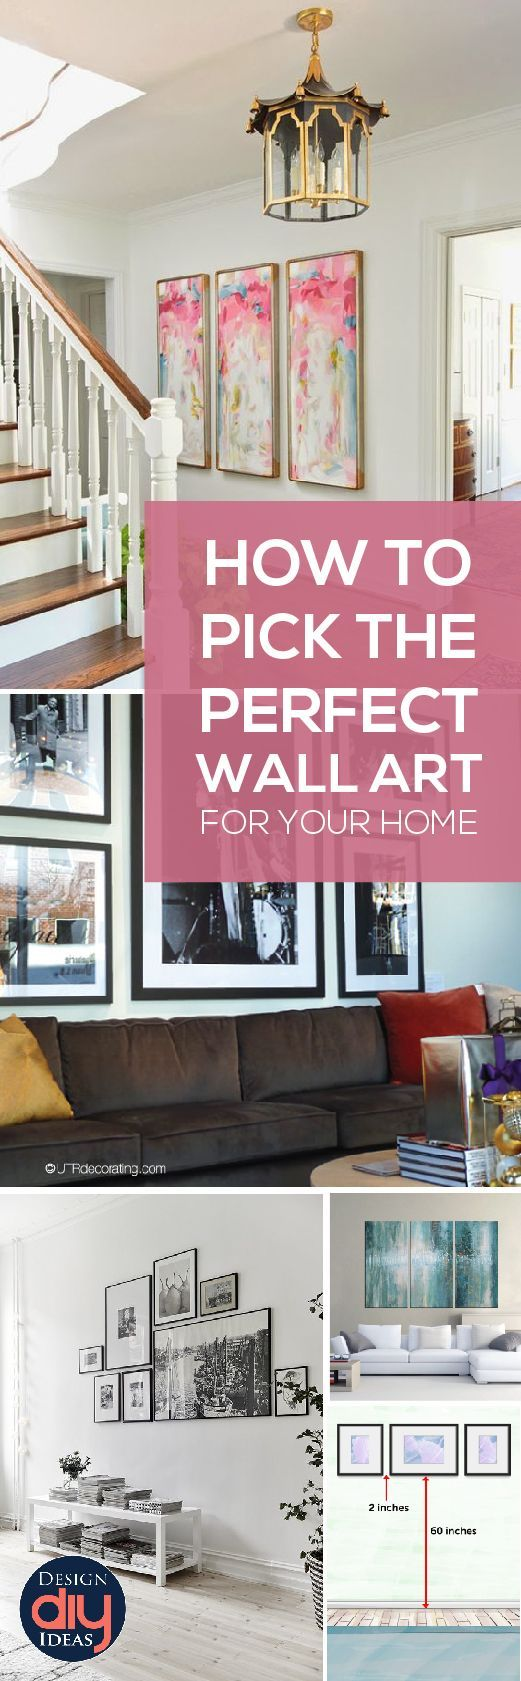 Diy home decor ideas for wall art art can pull a room together but